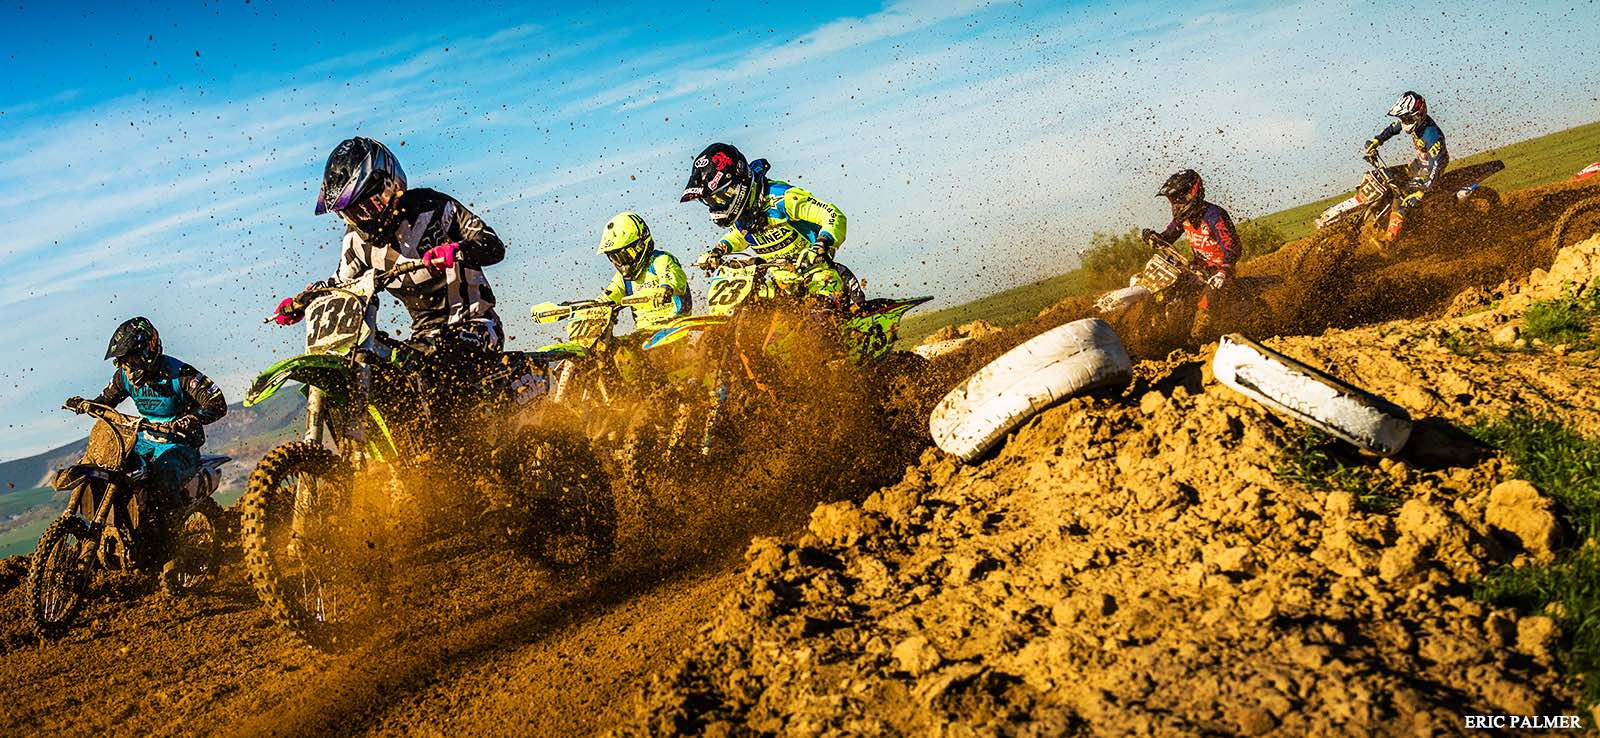 Motocross action at it's best from Round 5 of the MX Nationals at Zone 7 in Cape Town